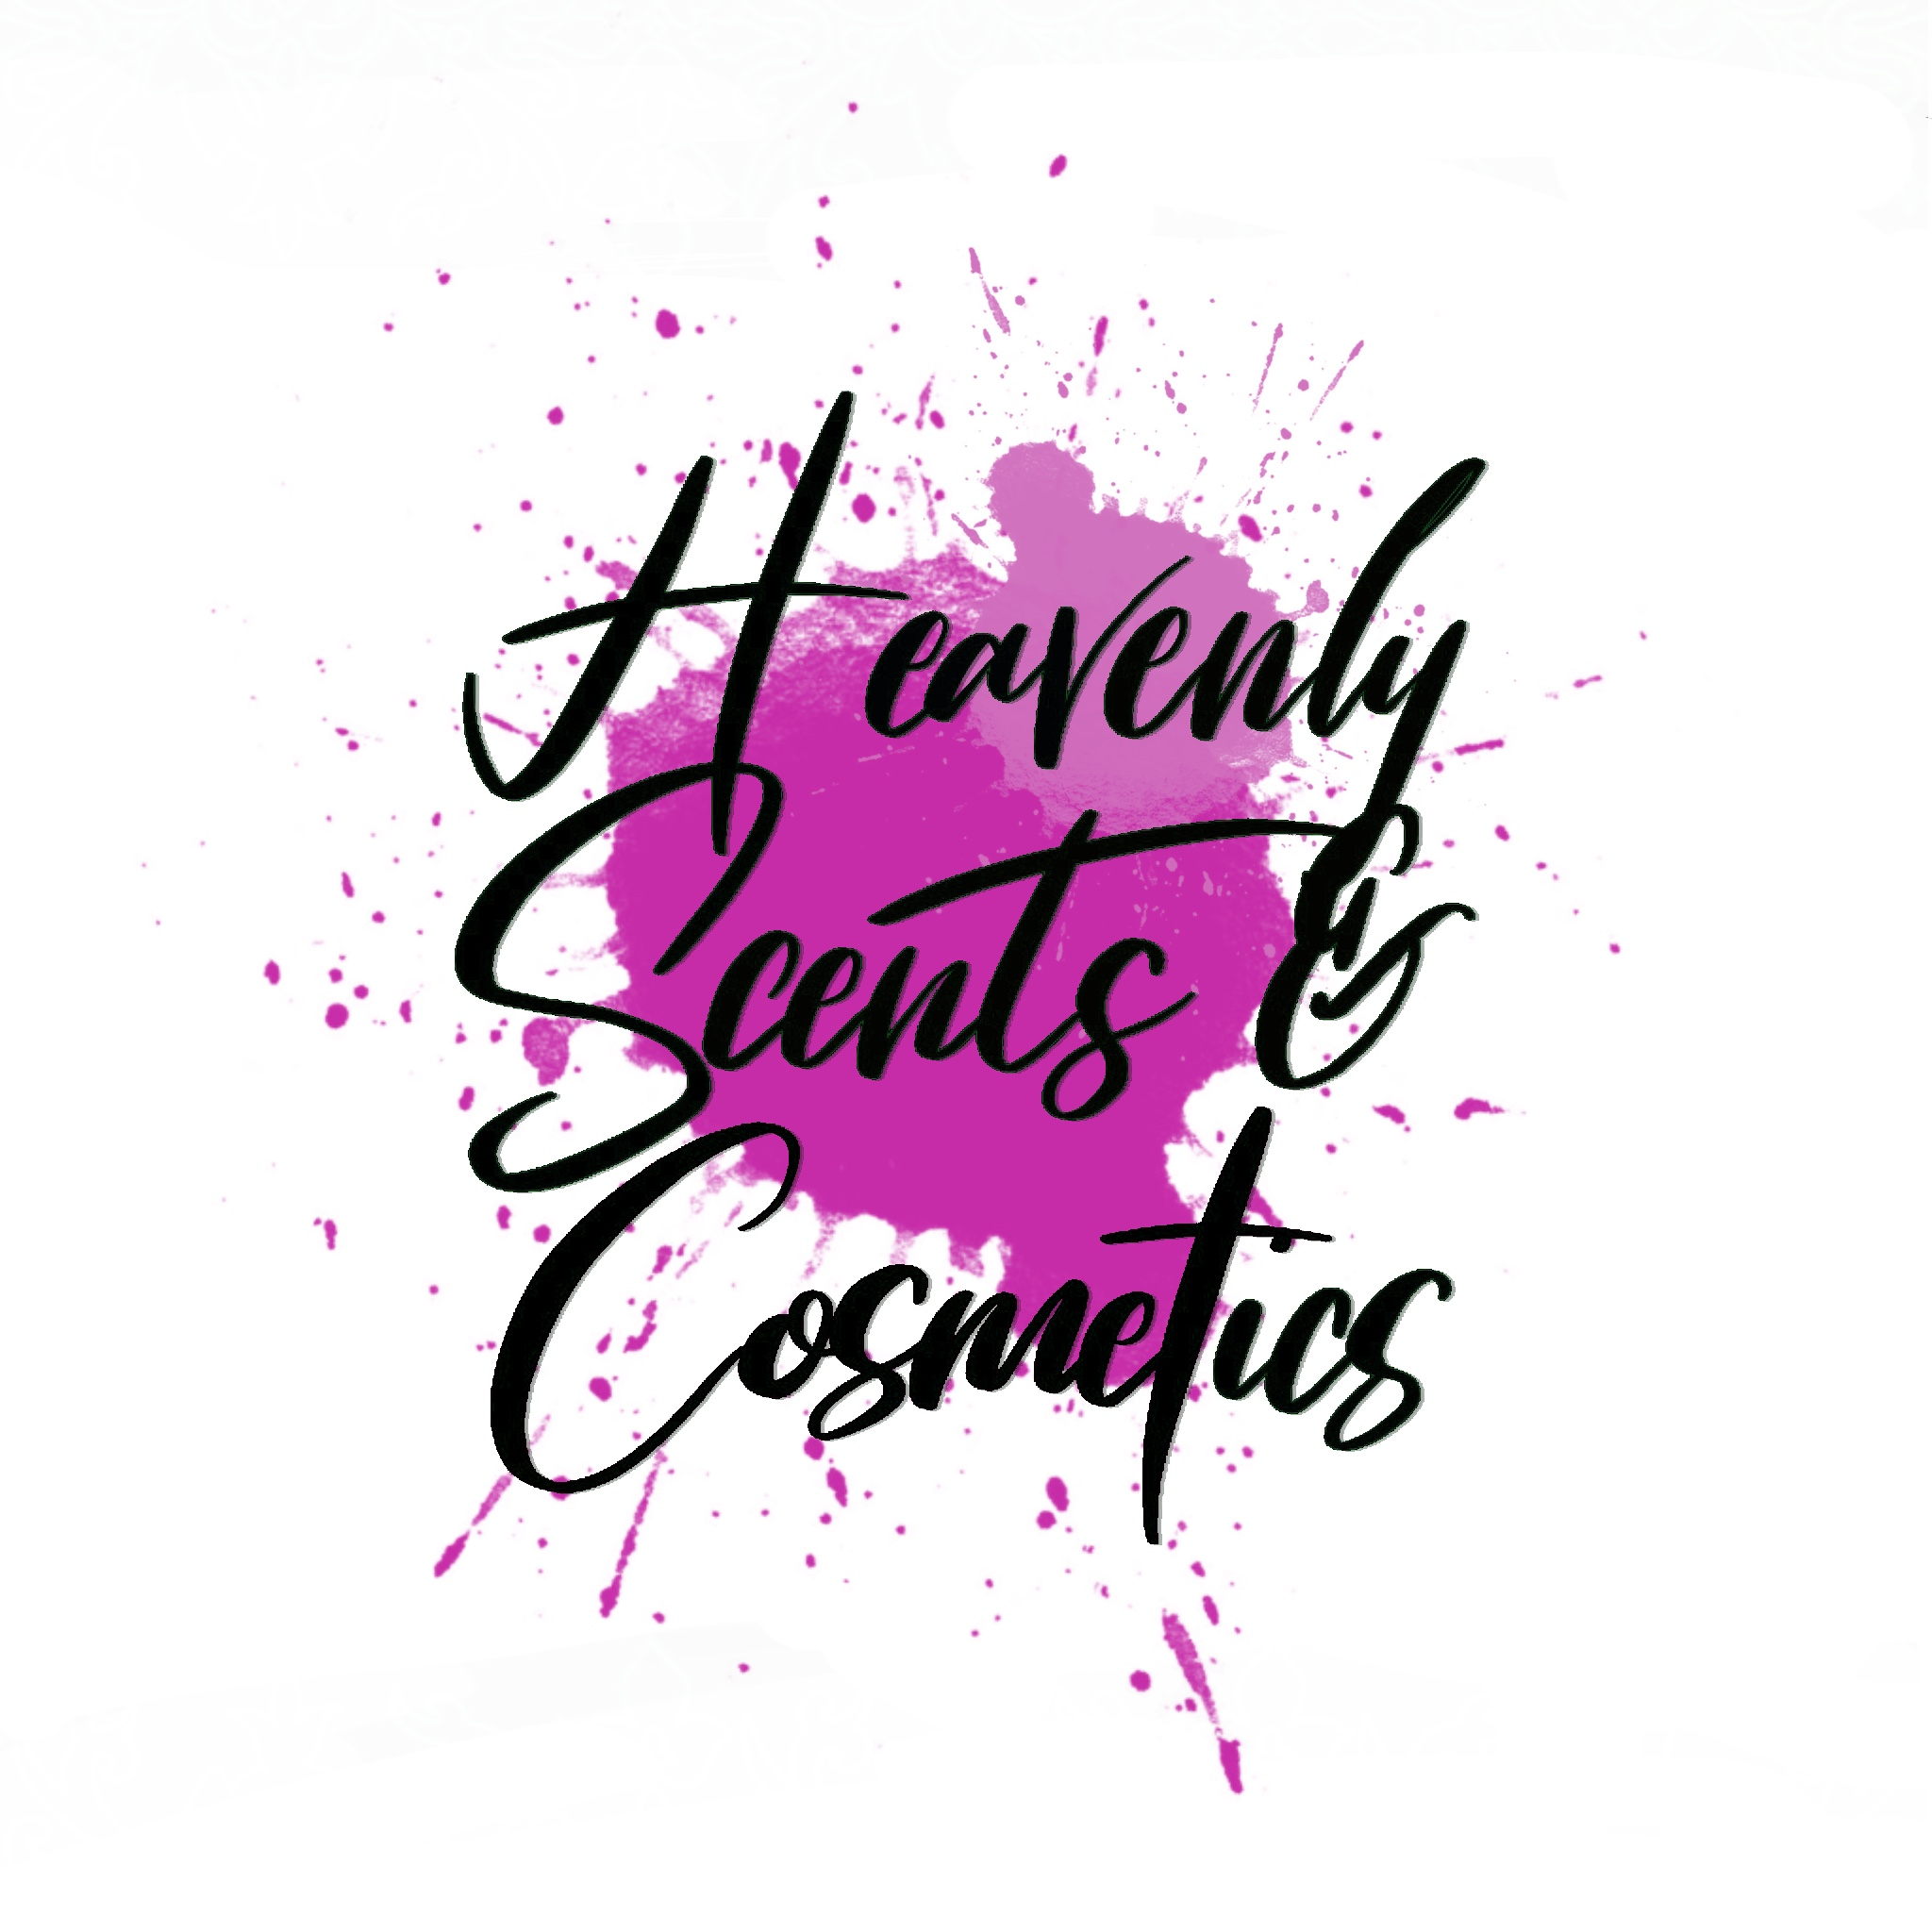 Heavenly Scents and Cosmetics